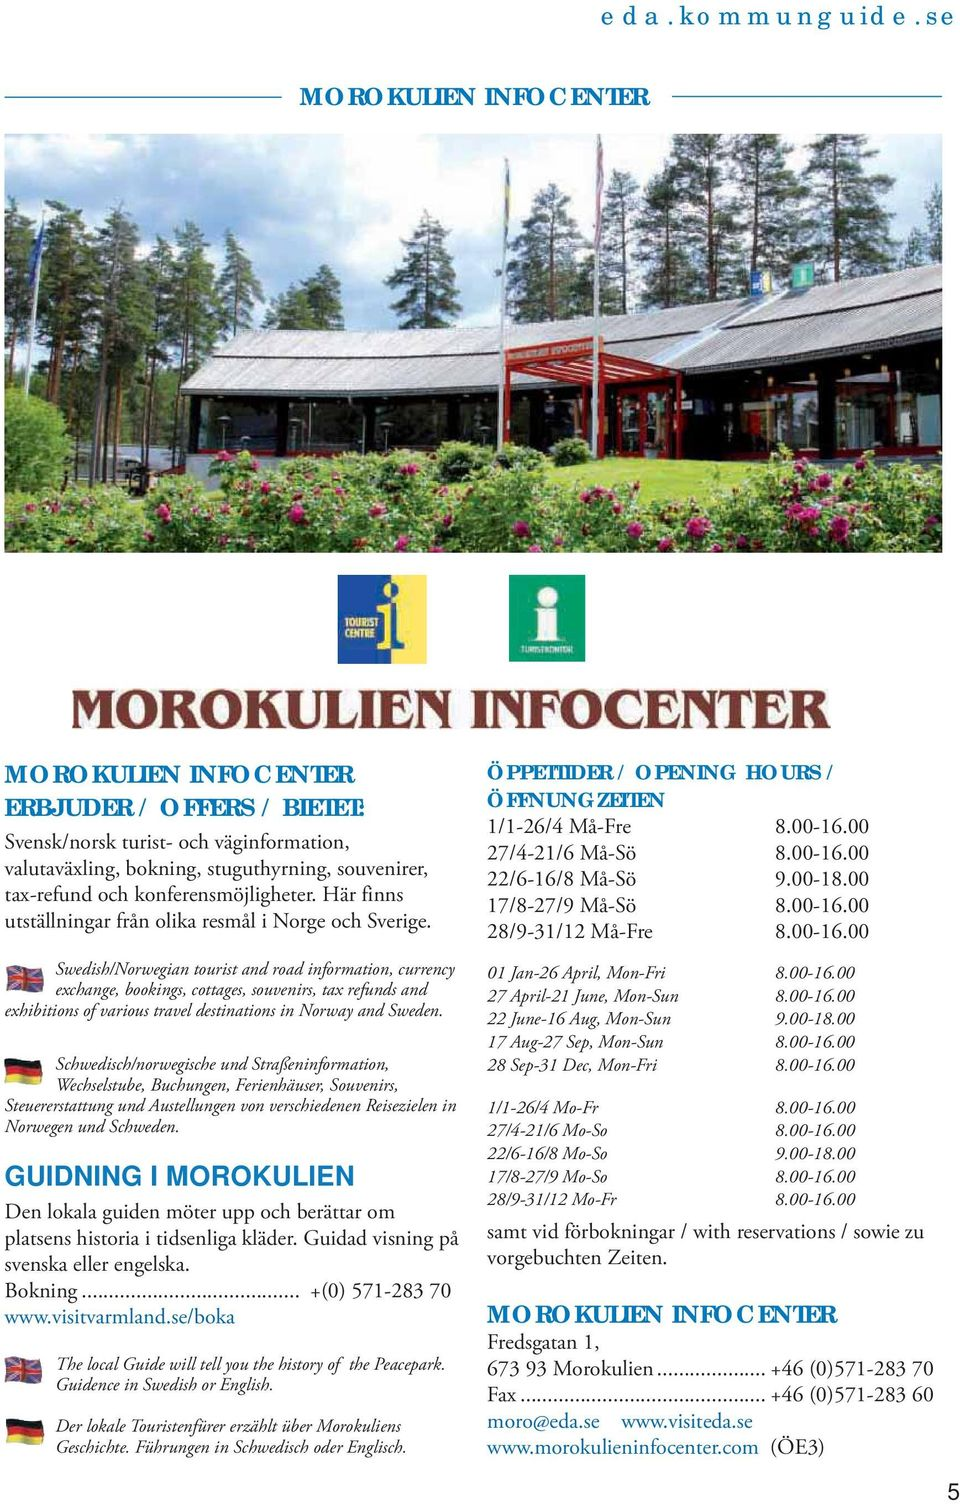 Swedish/Norwegian tourist and road information, currency exchange, bookings, cottages, souvenirs, tax refunds and exhibitions of various travel destinations in Norway and Sweden.